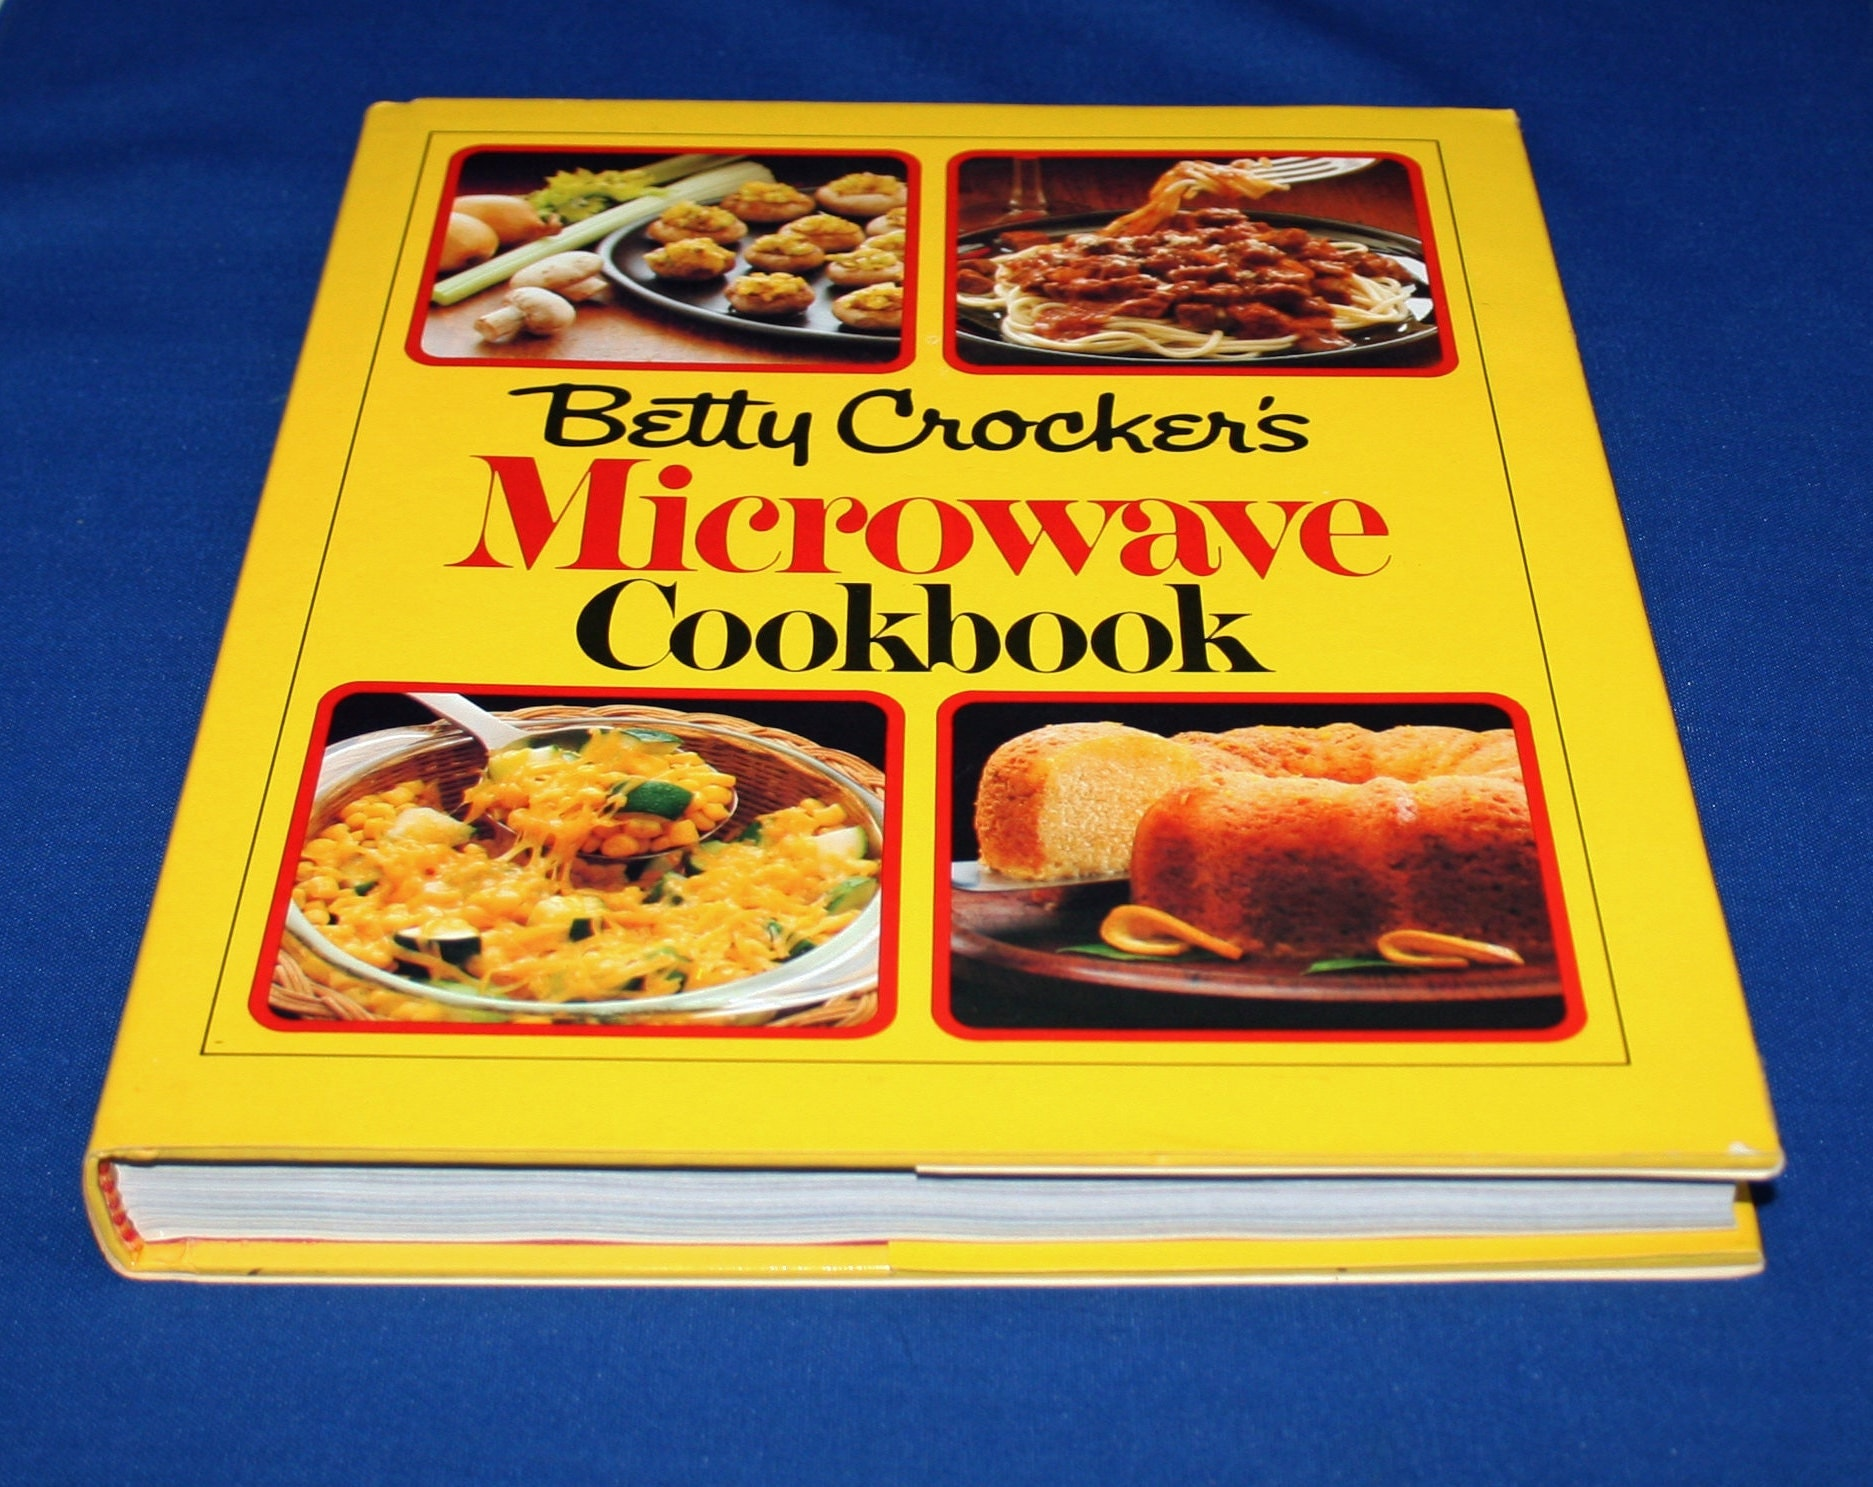 Find great deals on eBay for Microwave Cookbook. Shop with confidence.